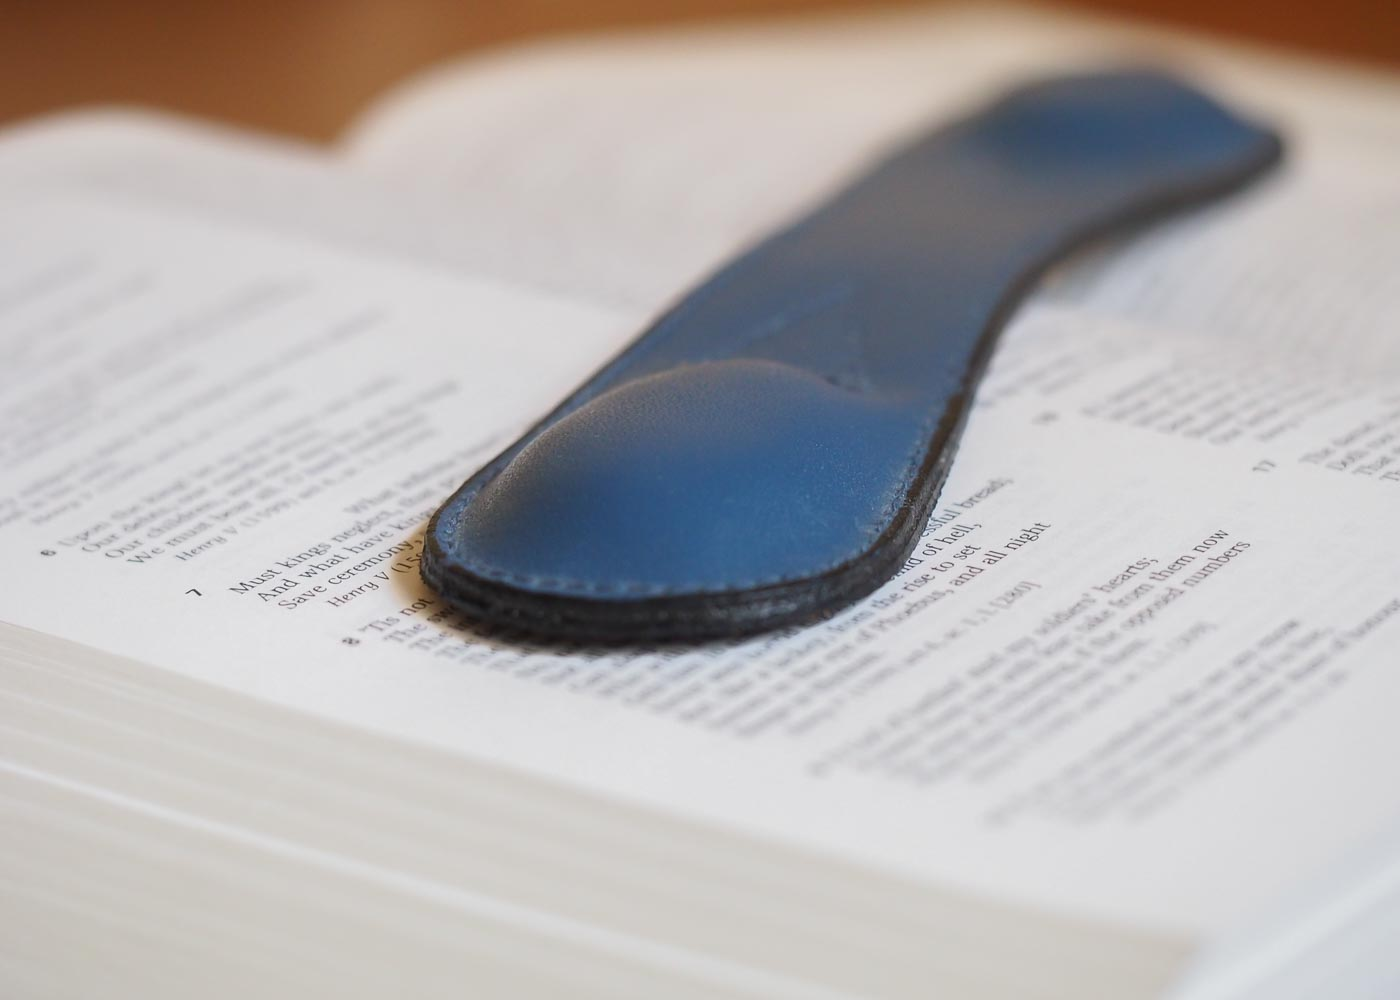 A book weight keeps pages from turning of their own accord.